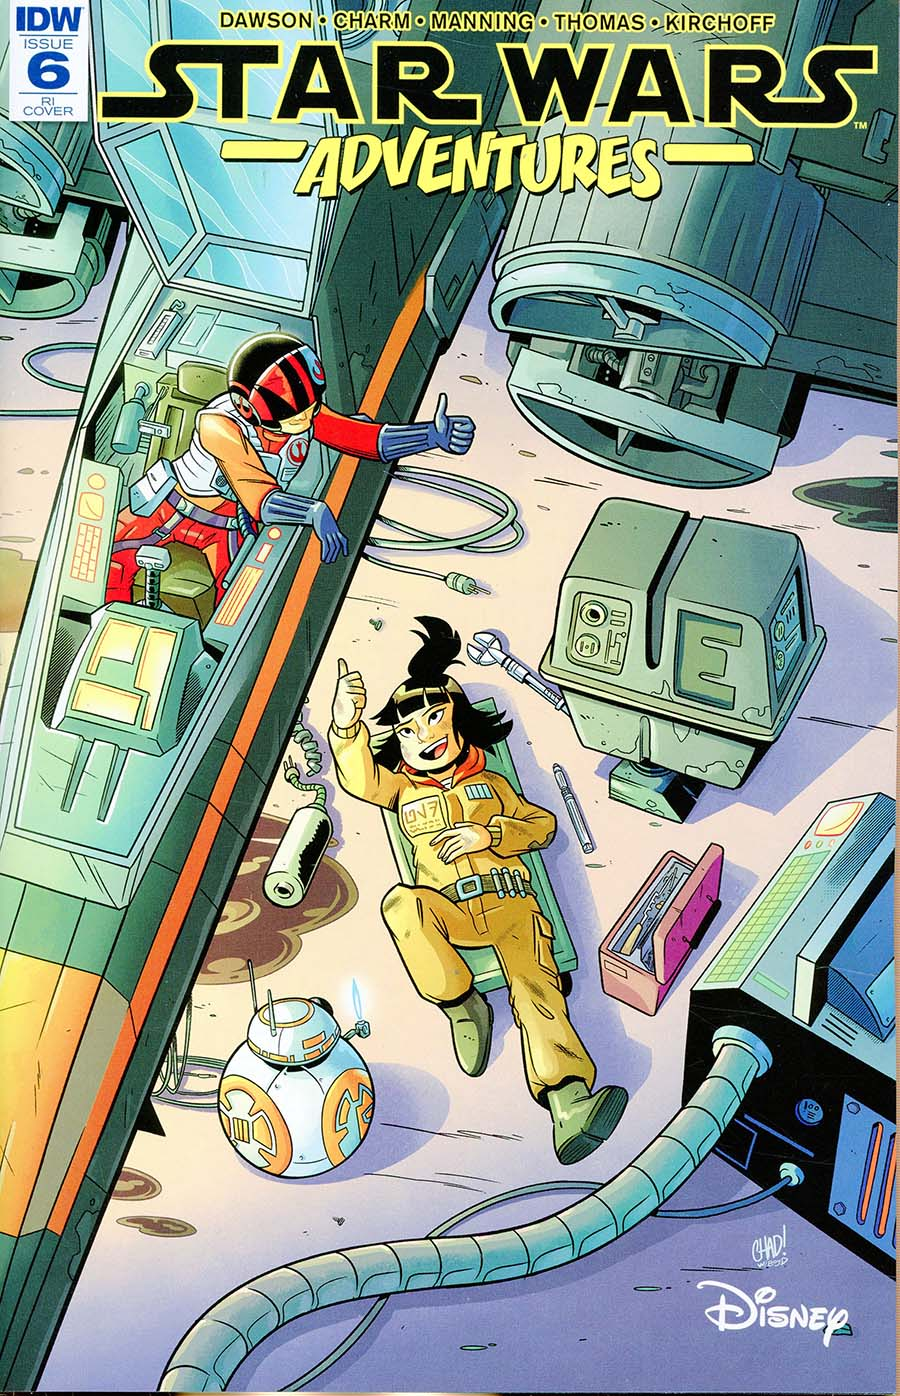 Star Wars Adventures #6 (2018)